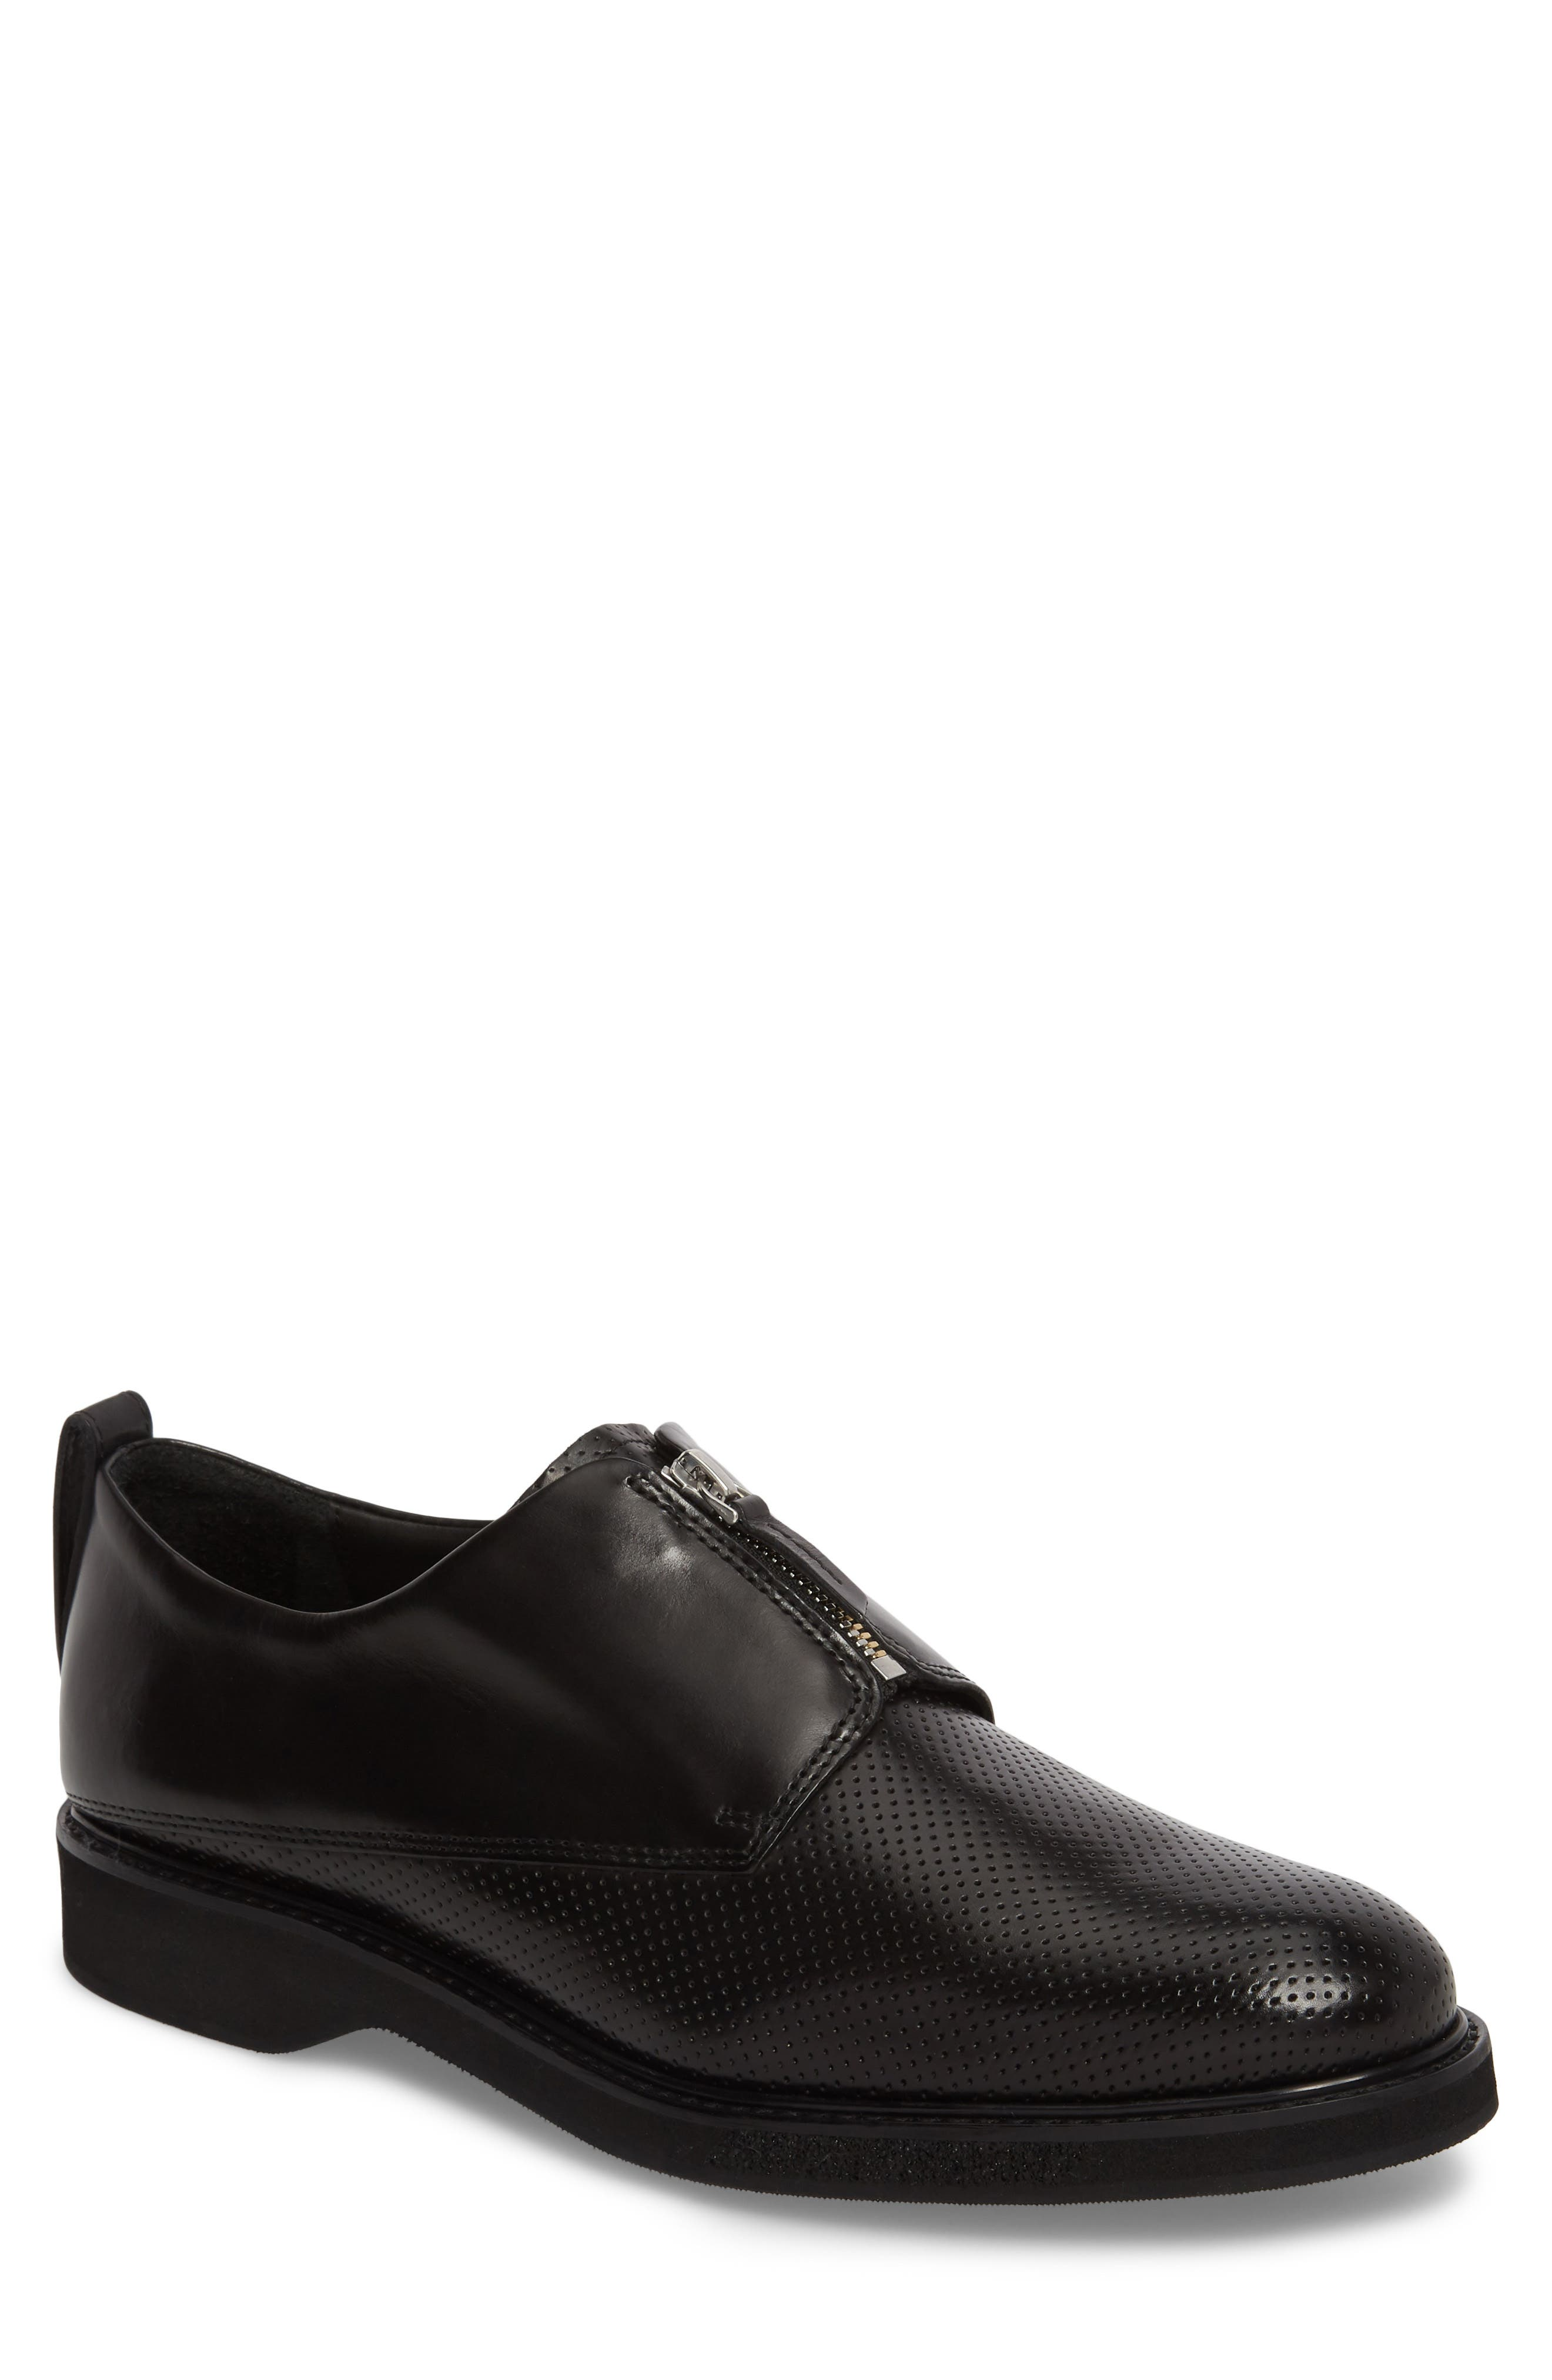 Zipped Derby Shoe,                         Main,                         color, Multi Perforated Black/ Black